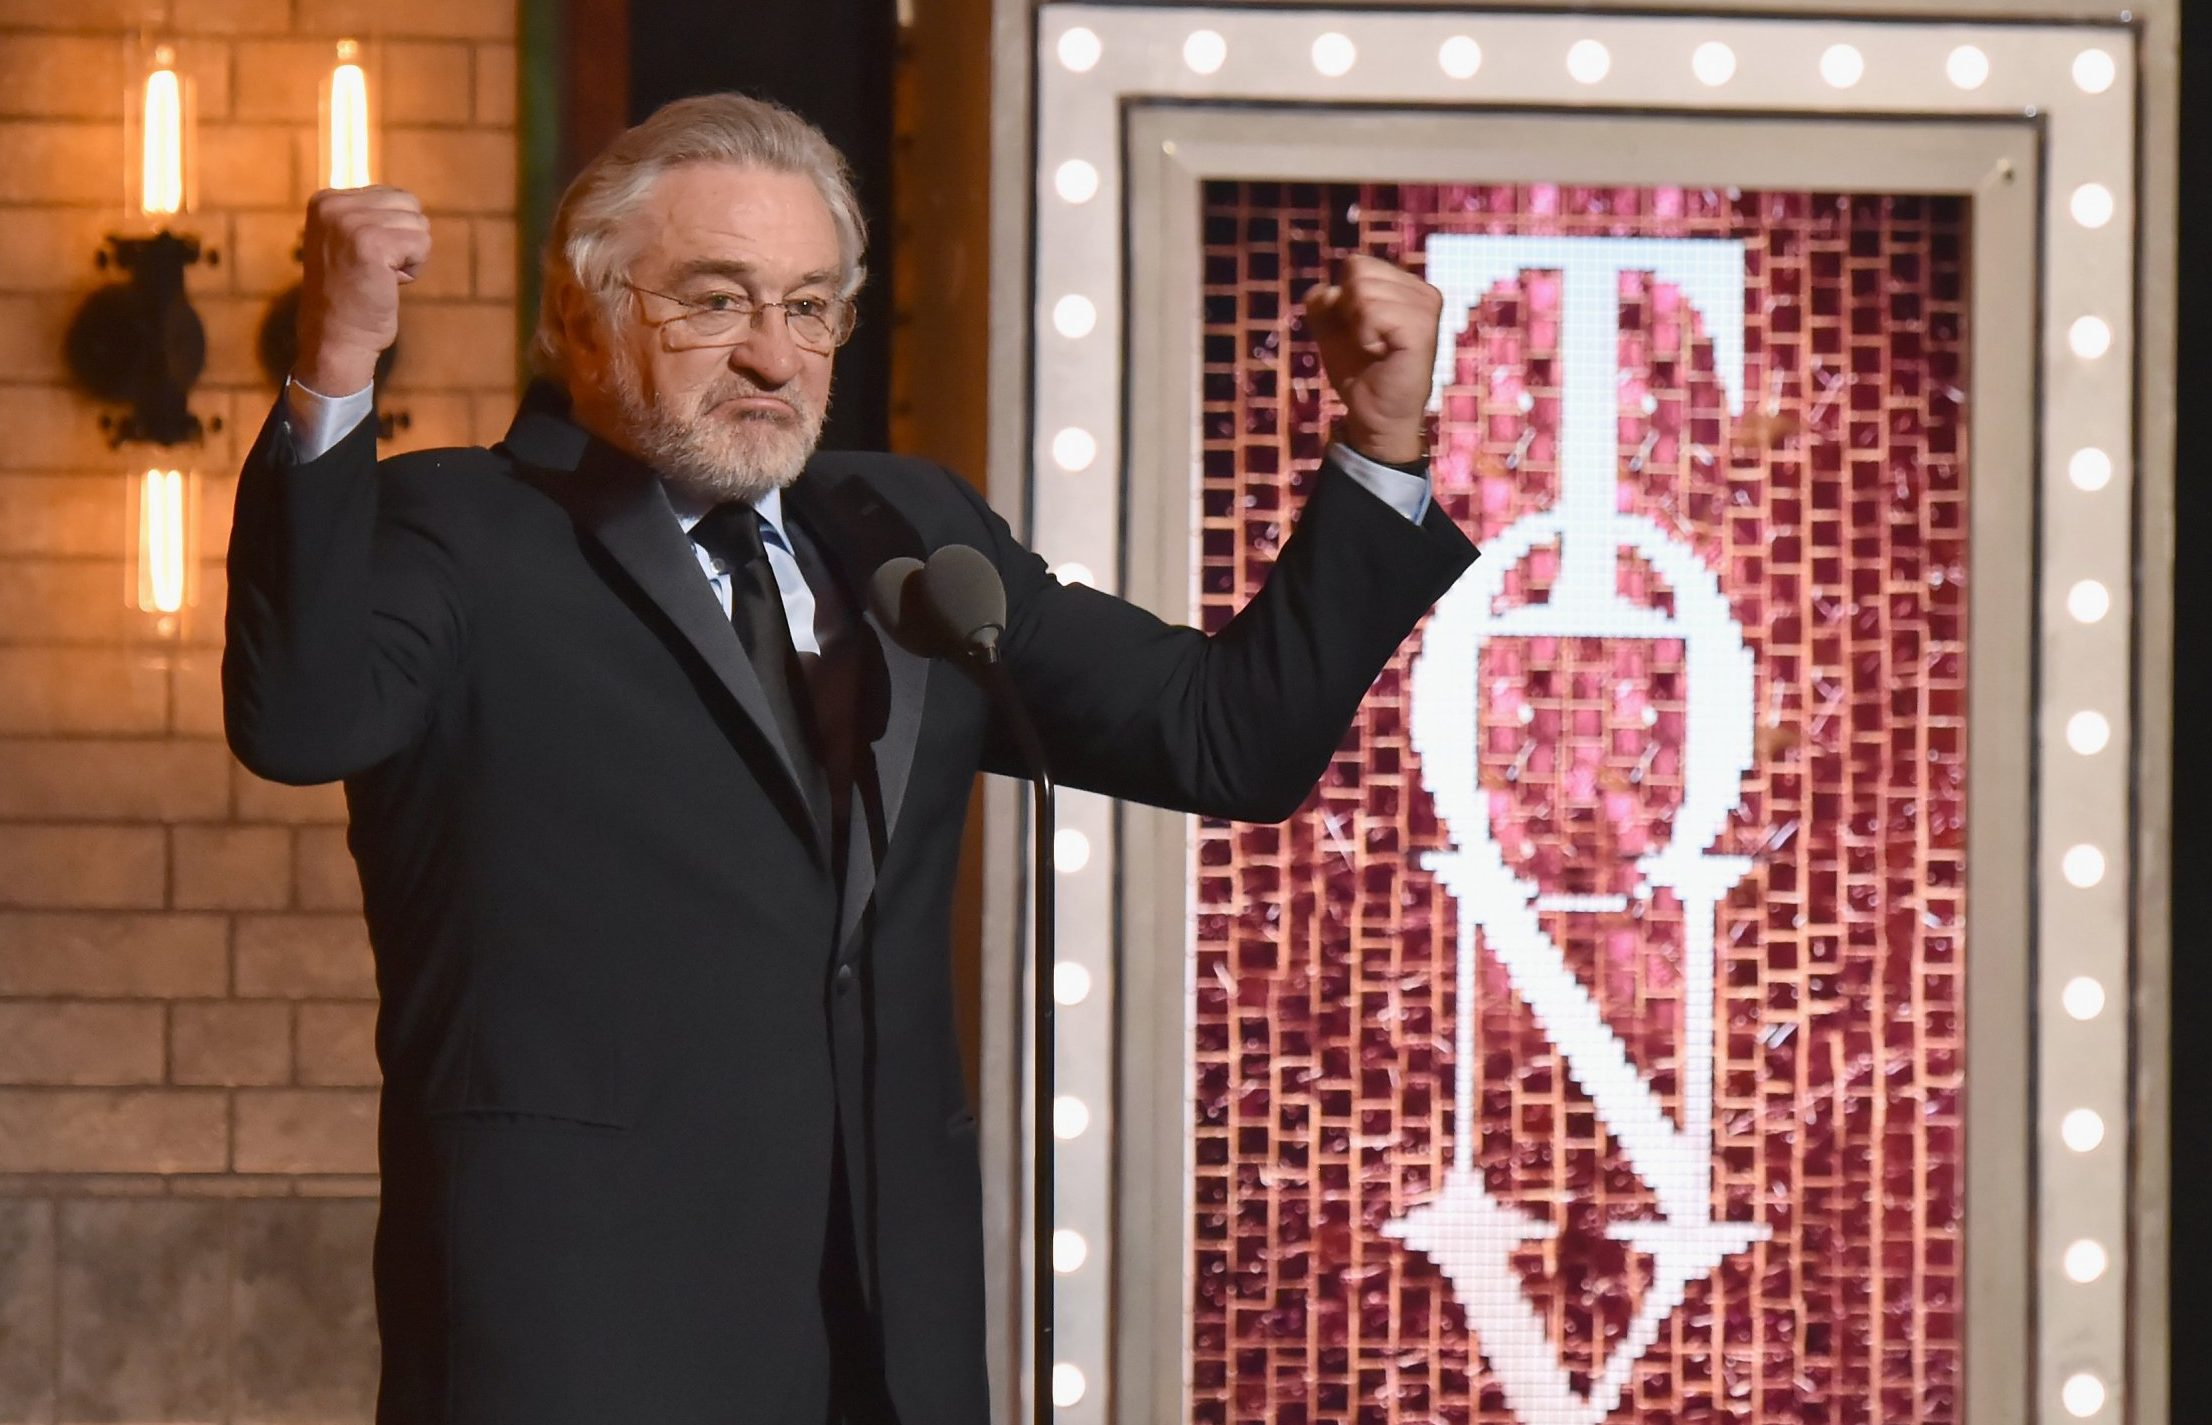 Robert De Niro earns himself standing ovation over 'f*** Trump' outburst at Tony Awards